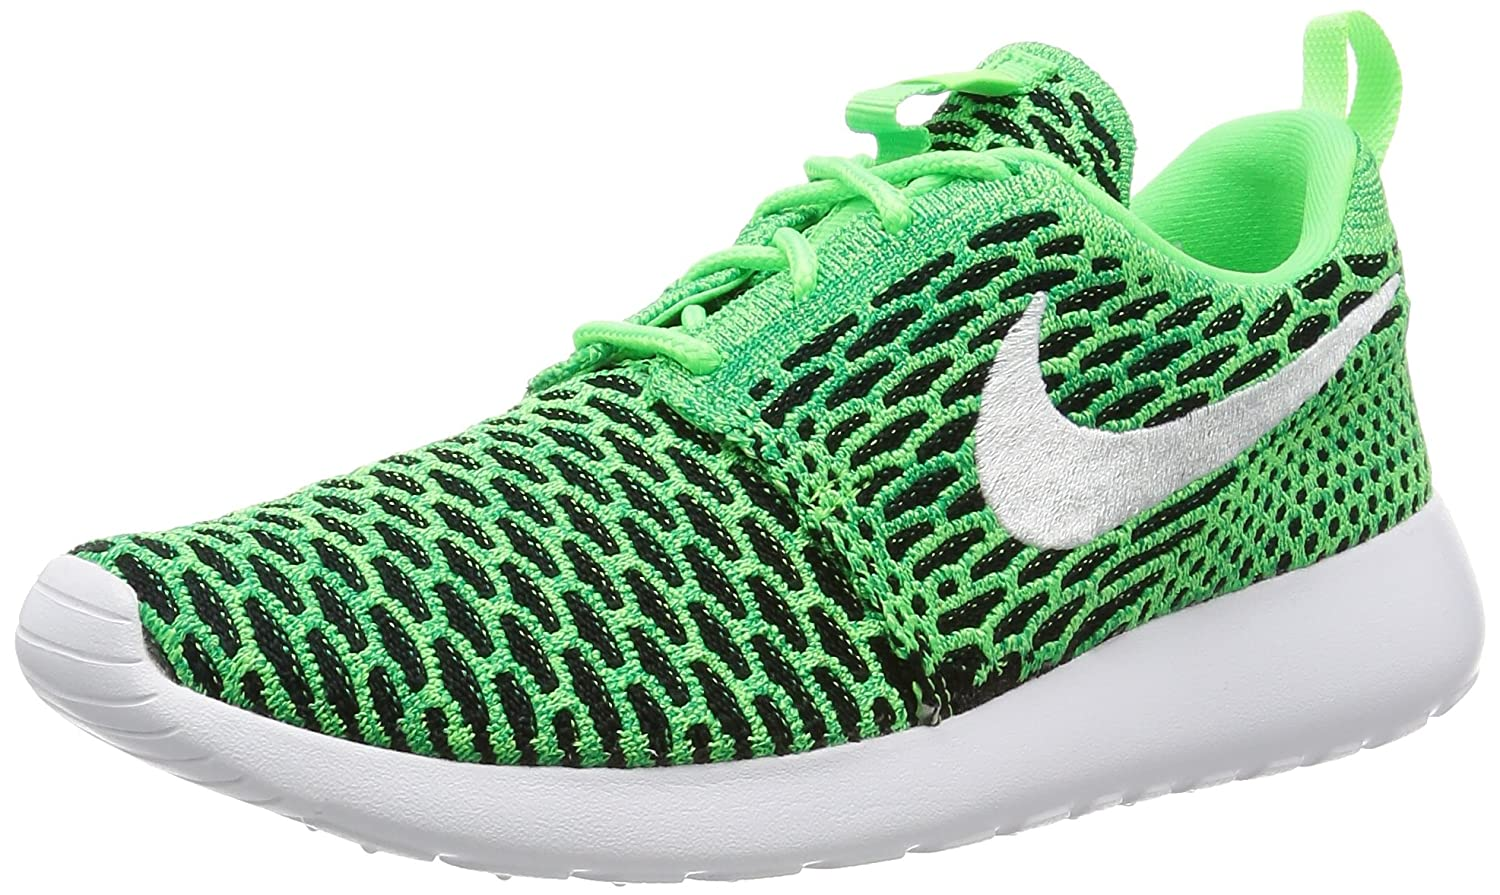 NIKE Womens Roshe One Flyknit Flyknit Colorblock Running Shoes B01HQSKF7G 8.5 M US|Voltage Green/White-lucid Green